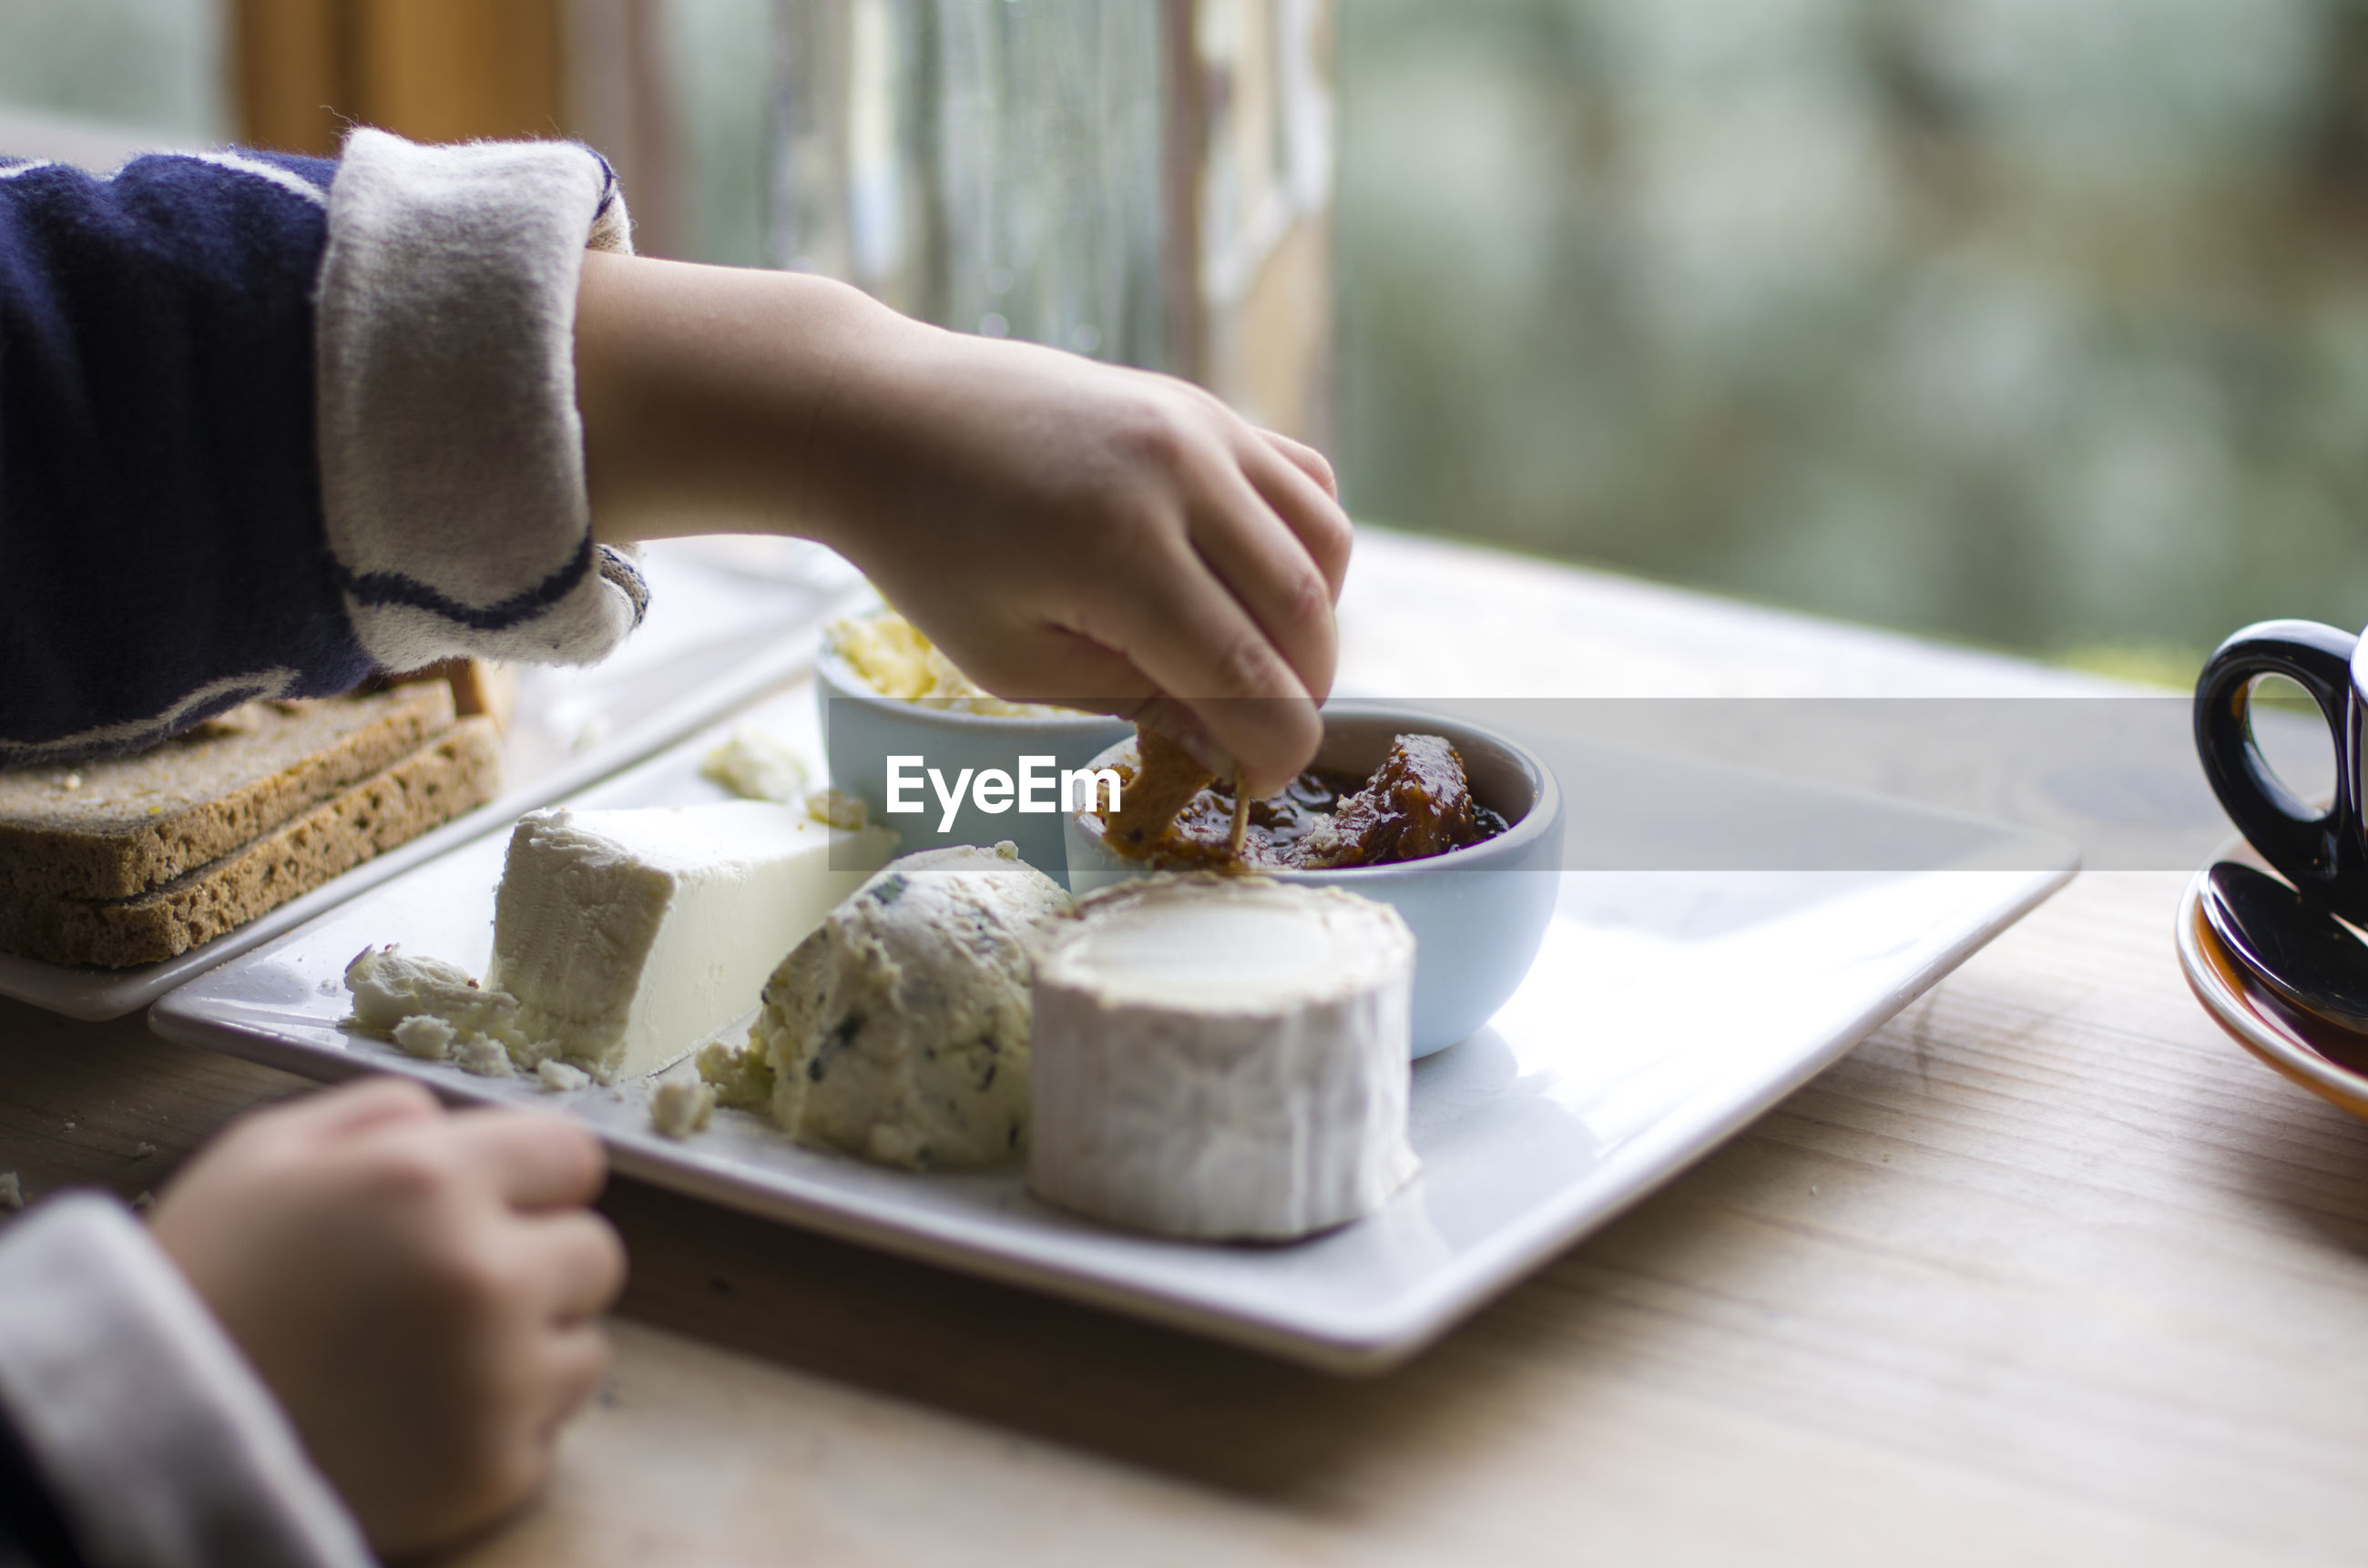 Cropped hand of person holding food in plate